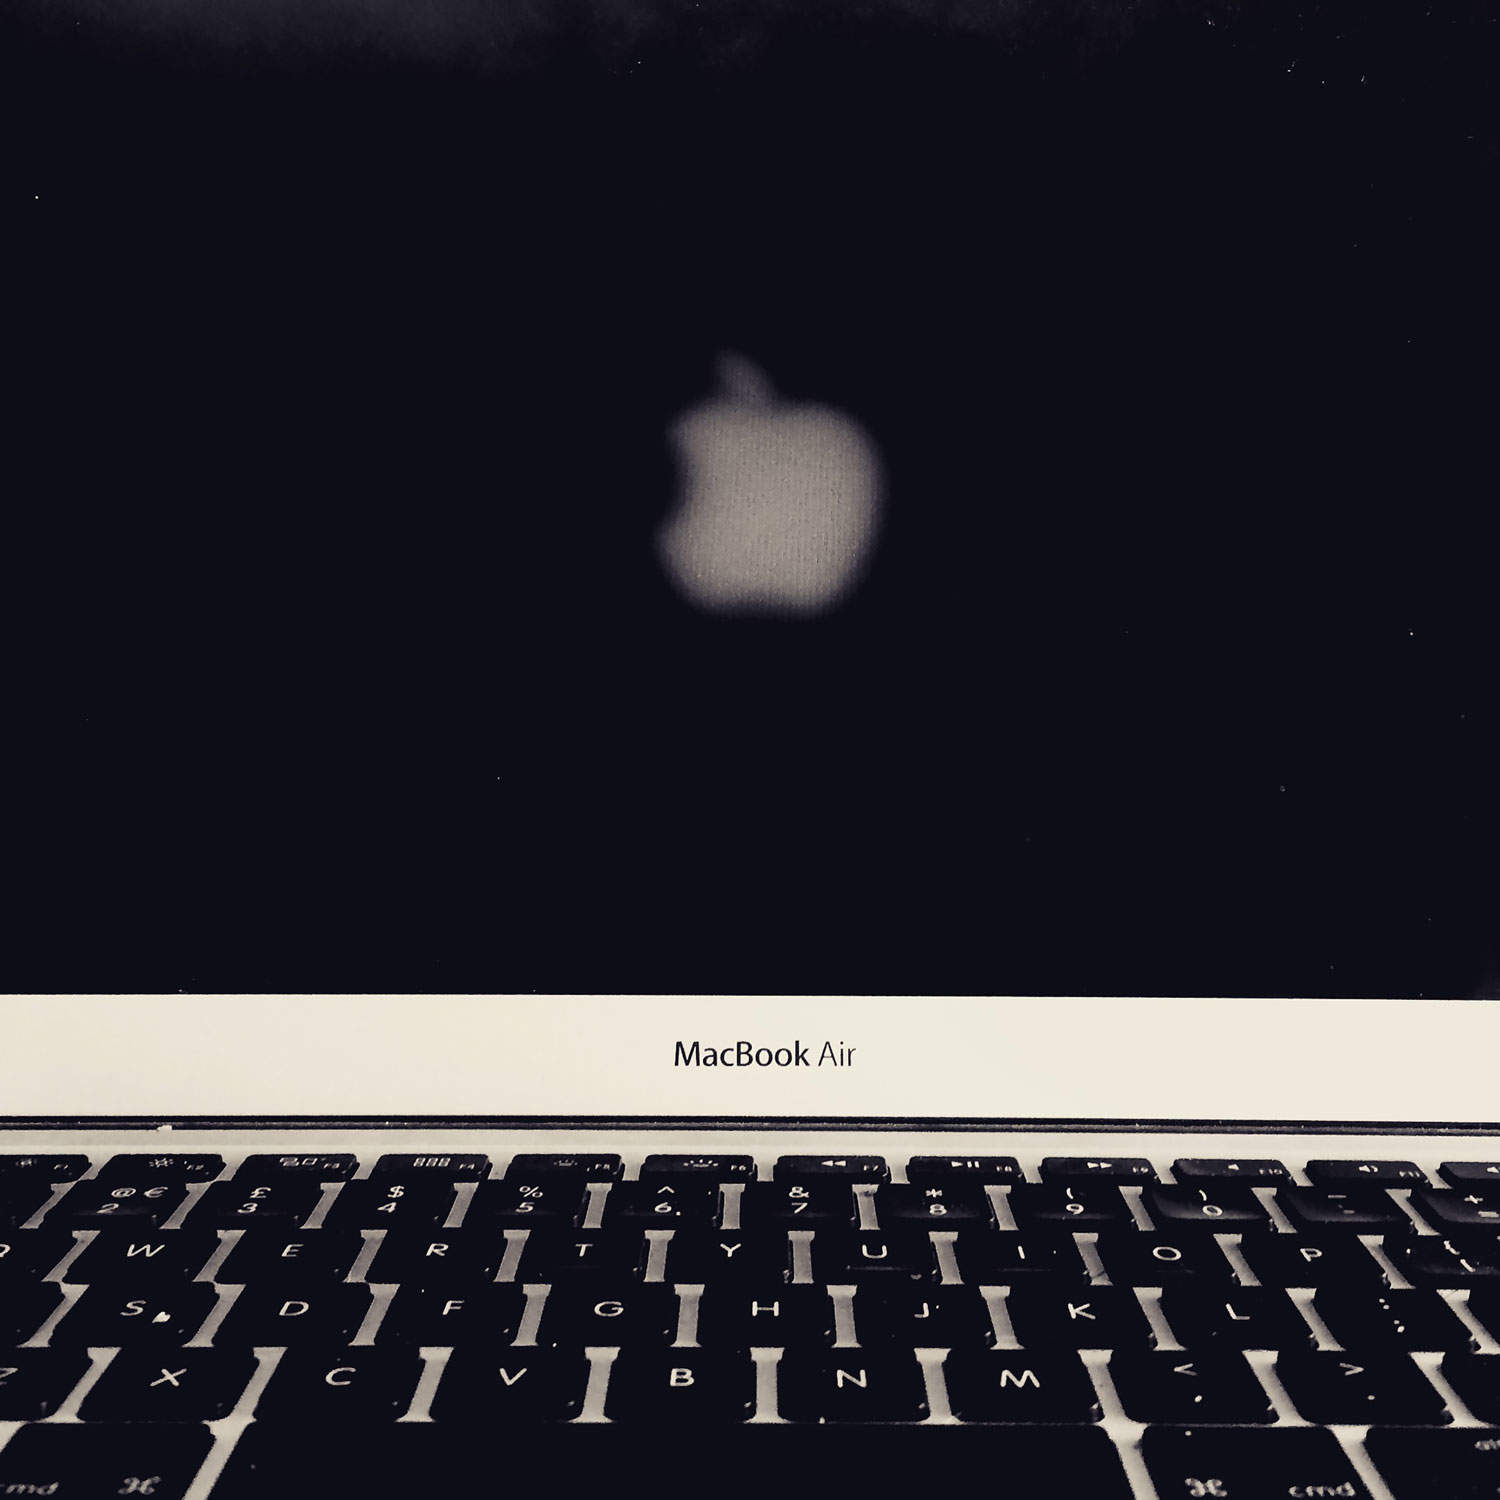 Apple Logo Reversed Macbook Air Screen